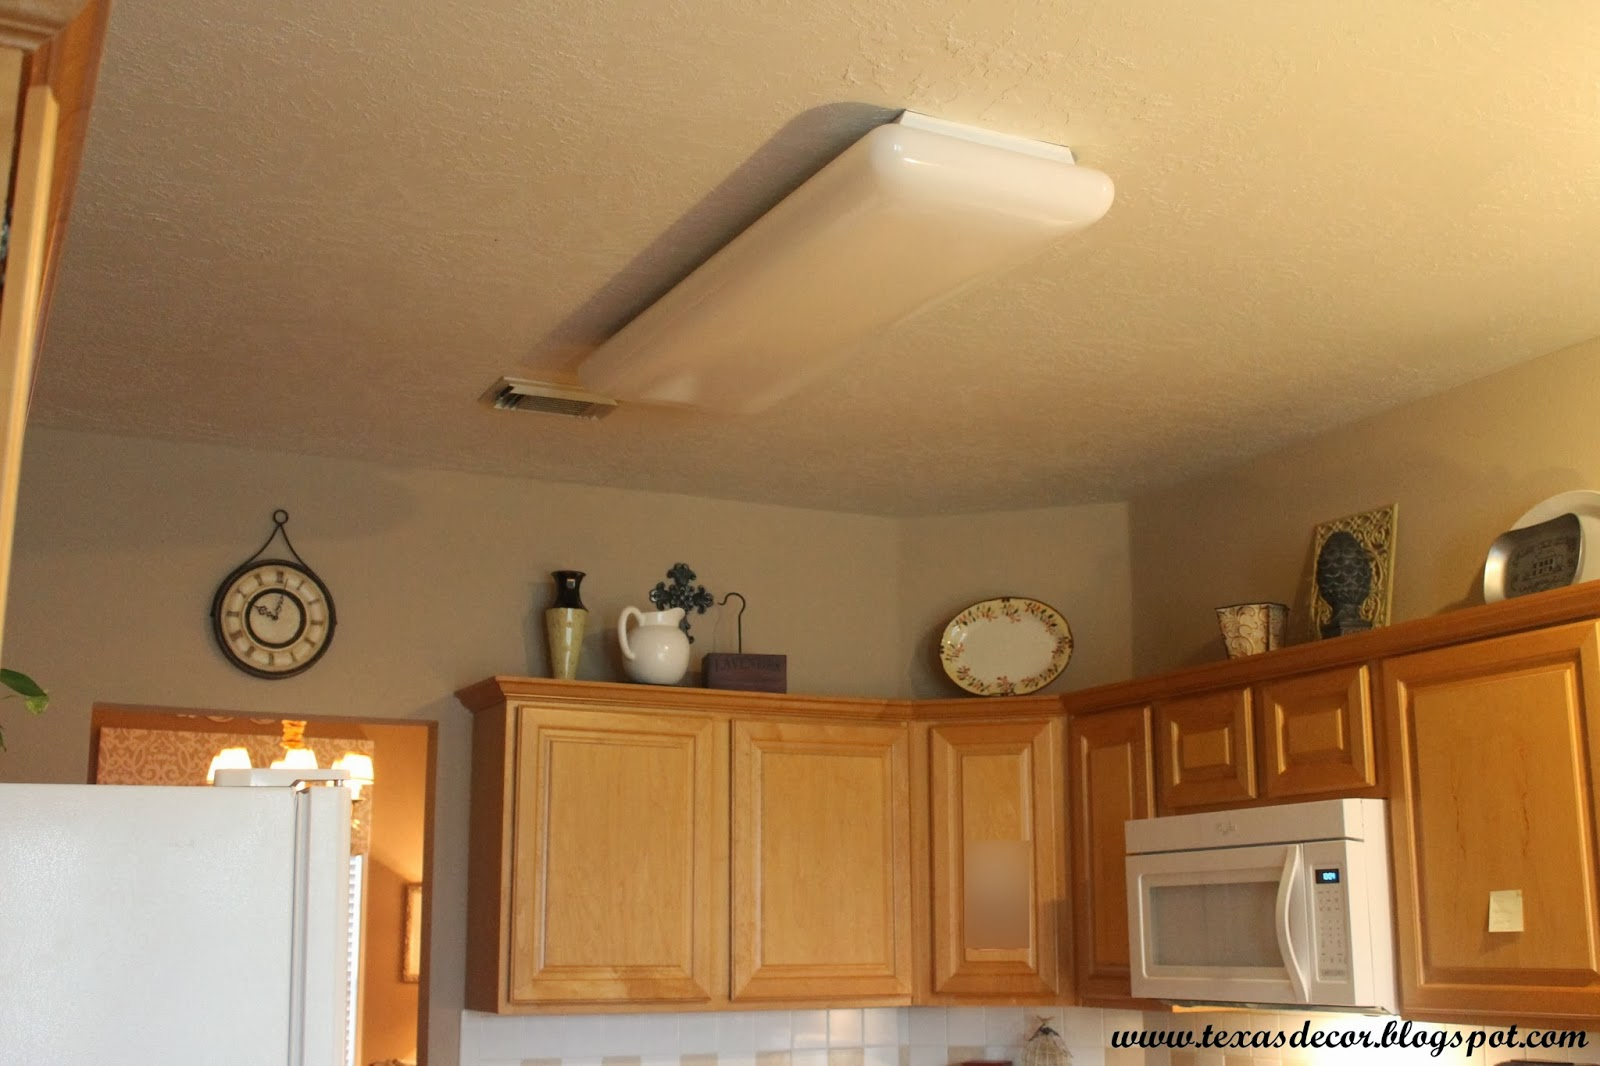 Texas Decor: A New Kitchen Light